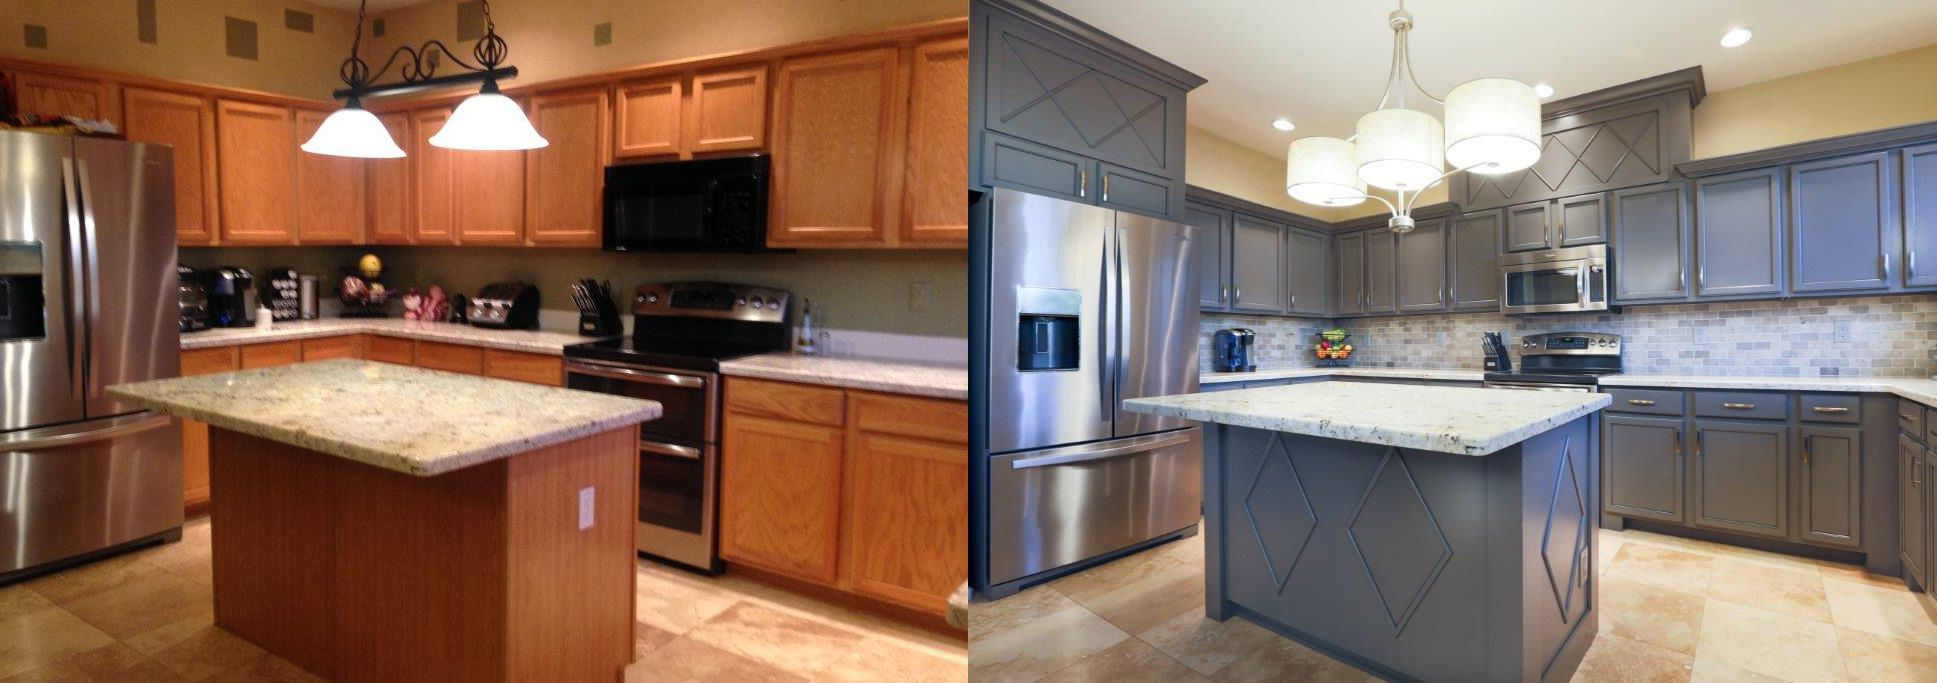 Cabinet Refinishing Before & After